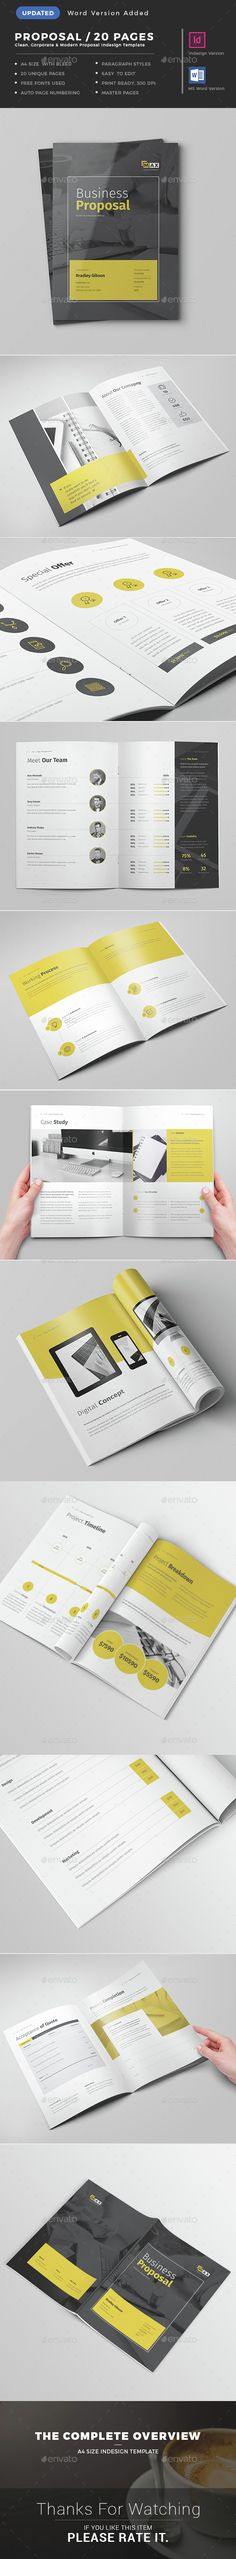 Commercial Proposal Format Brilliant Commercial Proposal Template #09  Commercial Proposal  Pinterest .